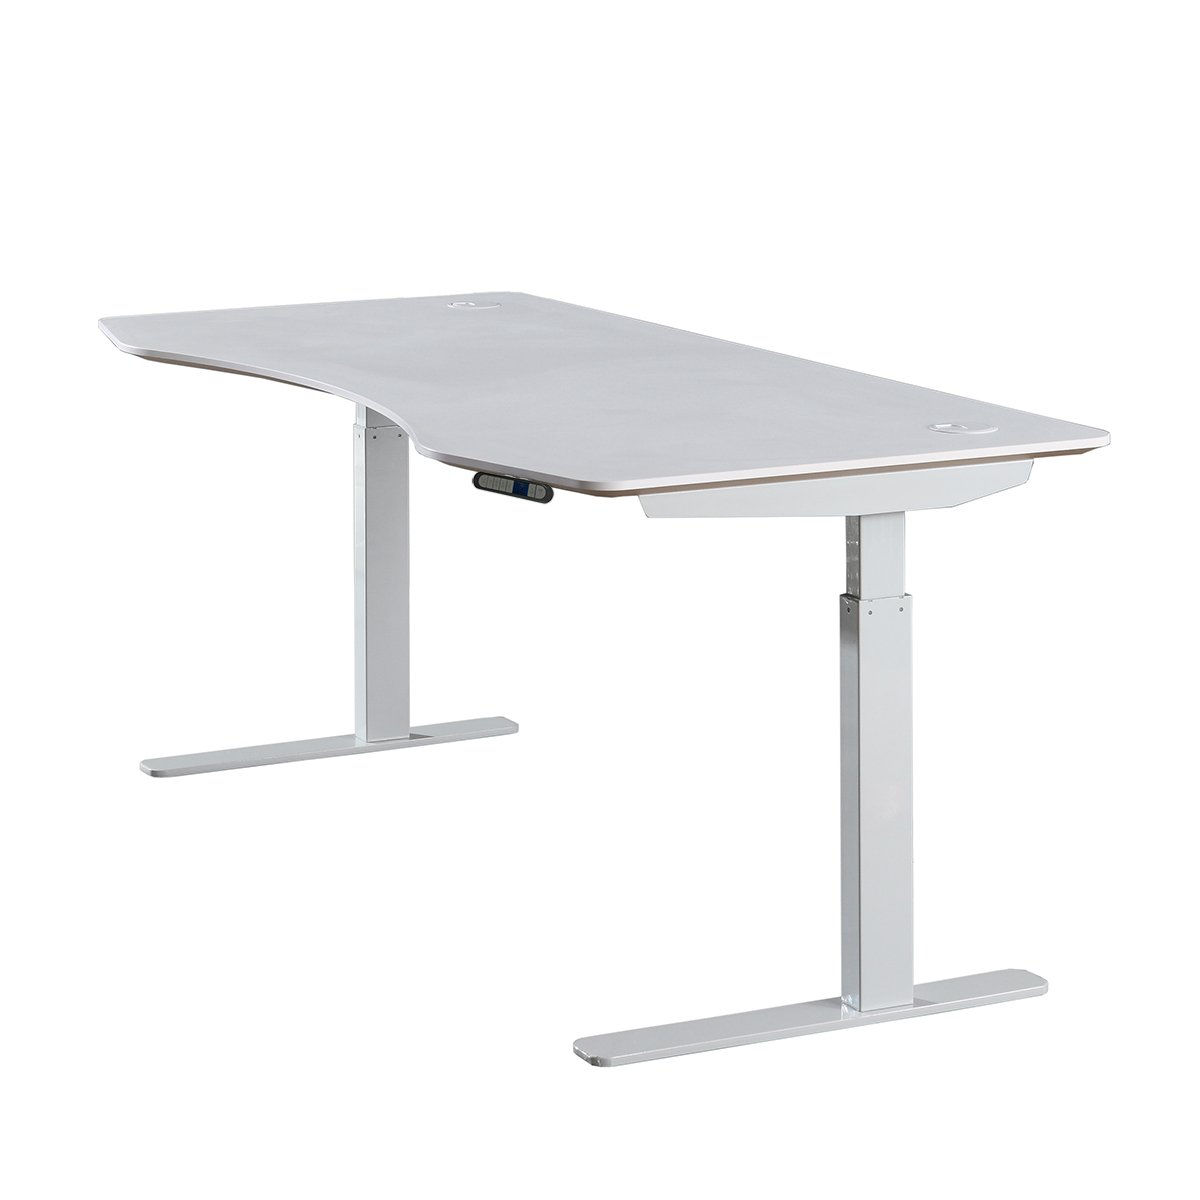 ApexDesk Elite Series 60'' W Electric Height Adjustable Standing Desk (Memory Controller, 60'' White Top, Off-White Frame)